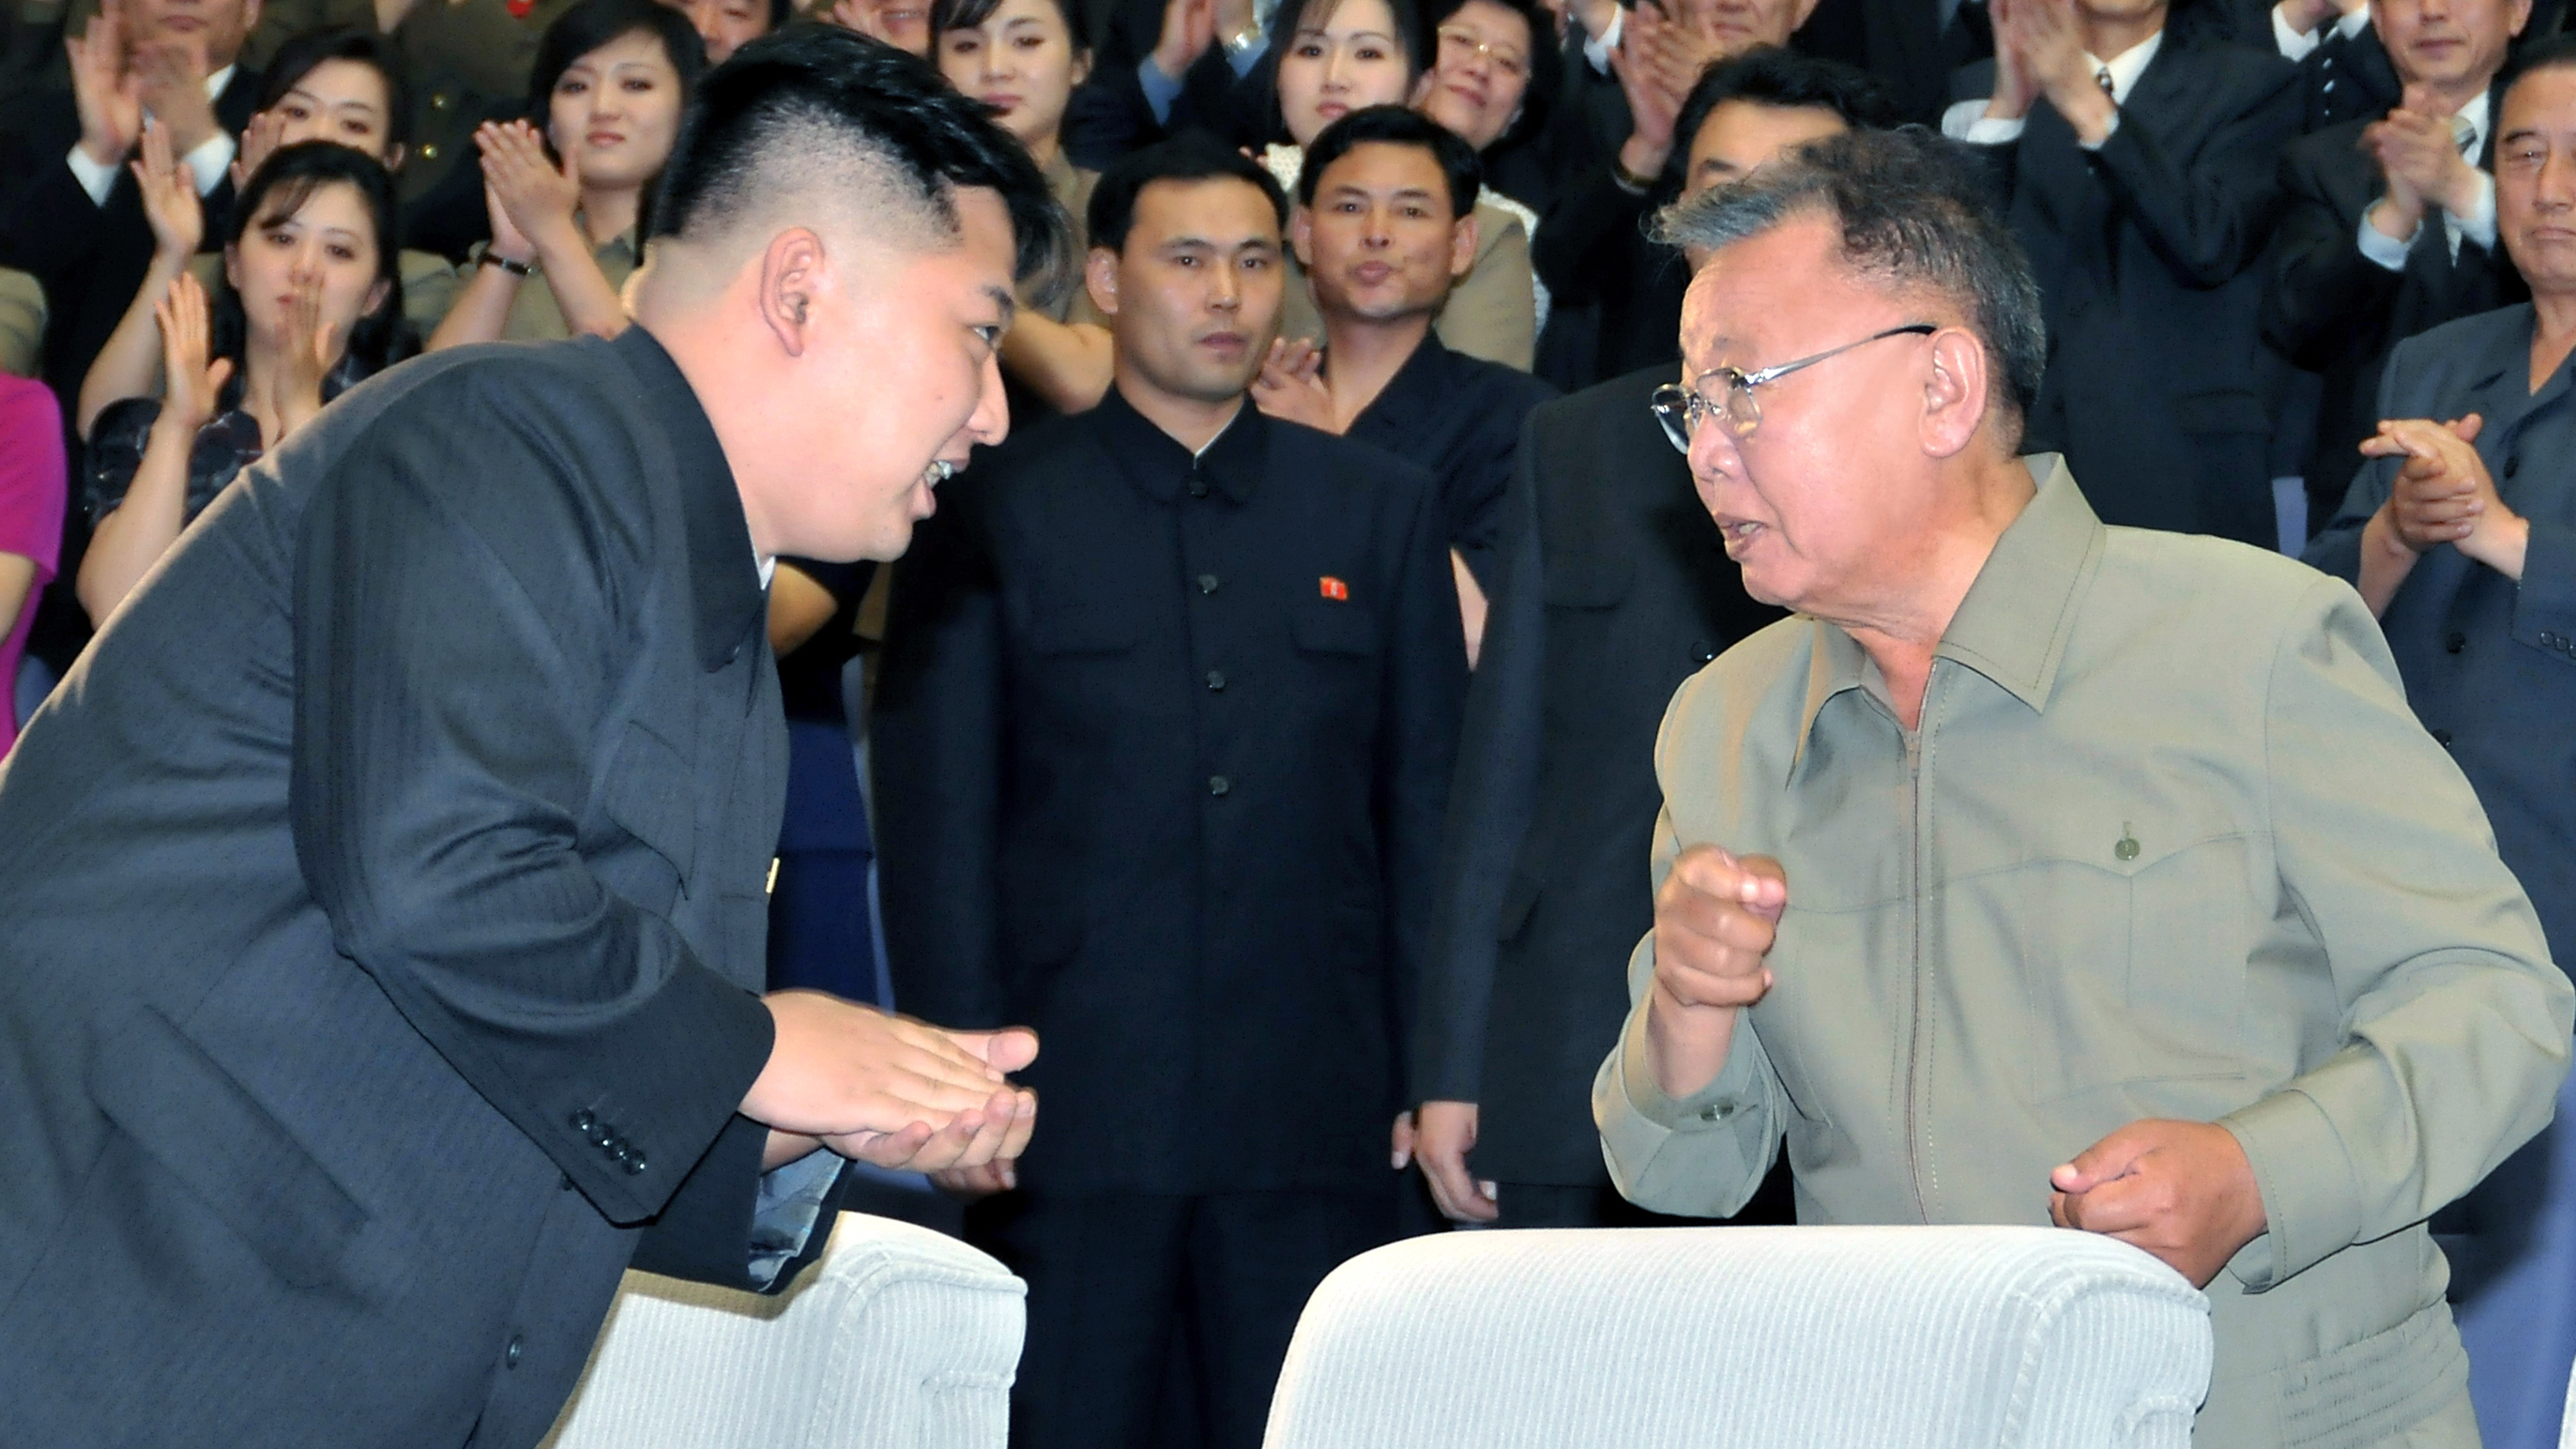 The eldest son, Kim Jong-il, said that he did not want to inherit power in the DPRK January 25, 2009 55